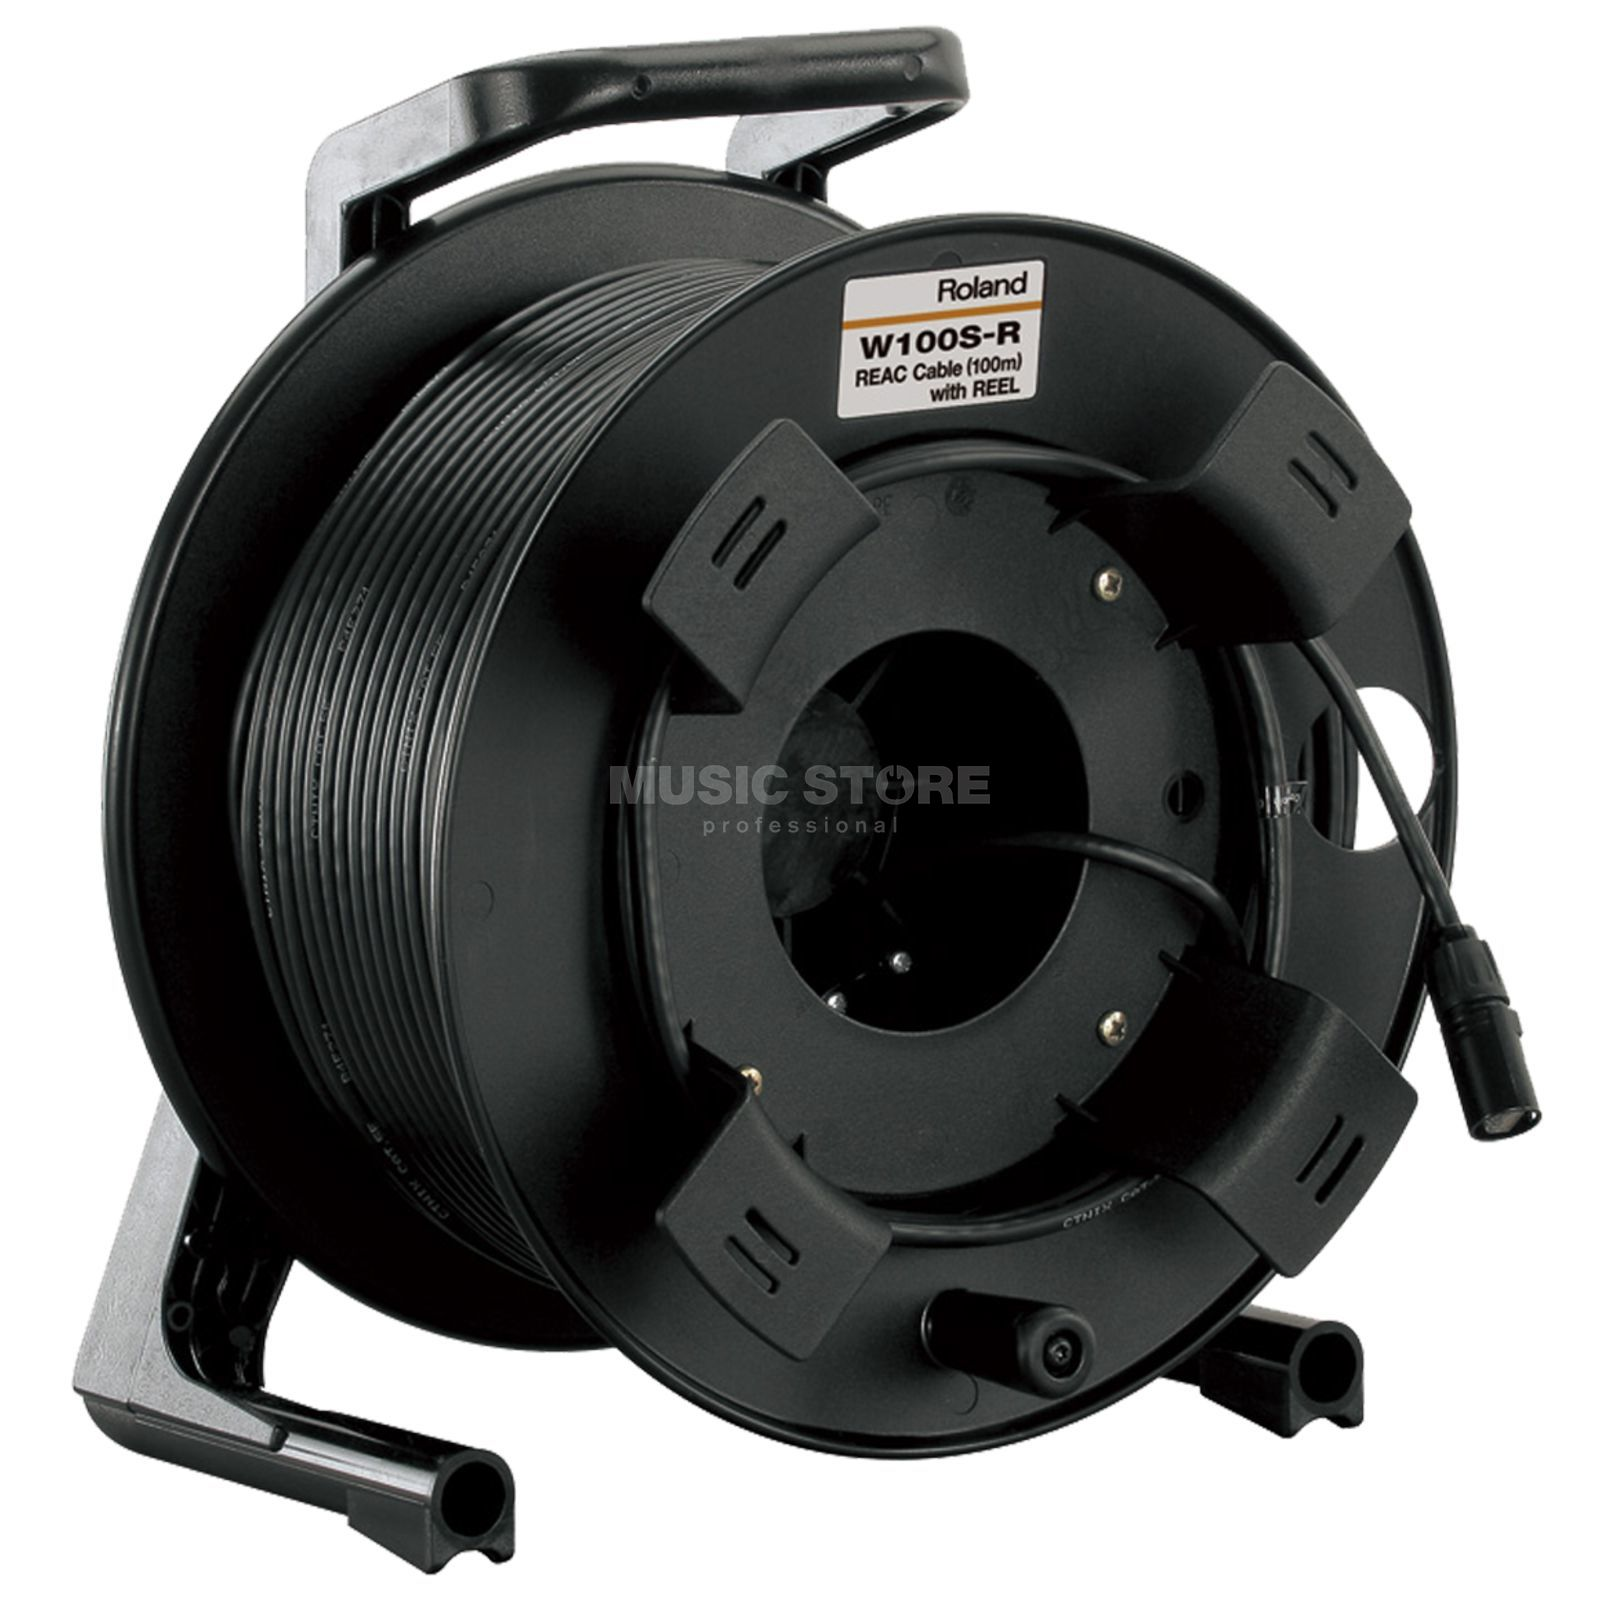 Roland W100S-R 100 Meter Cat5 Cable to Drum Produktbillede